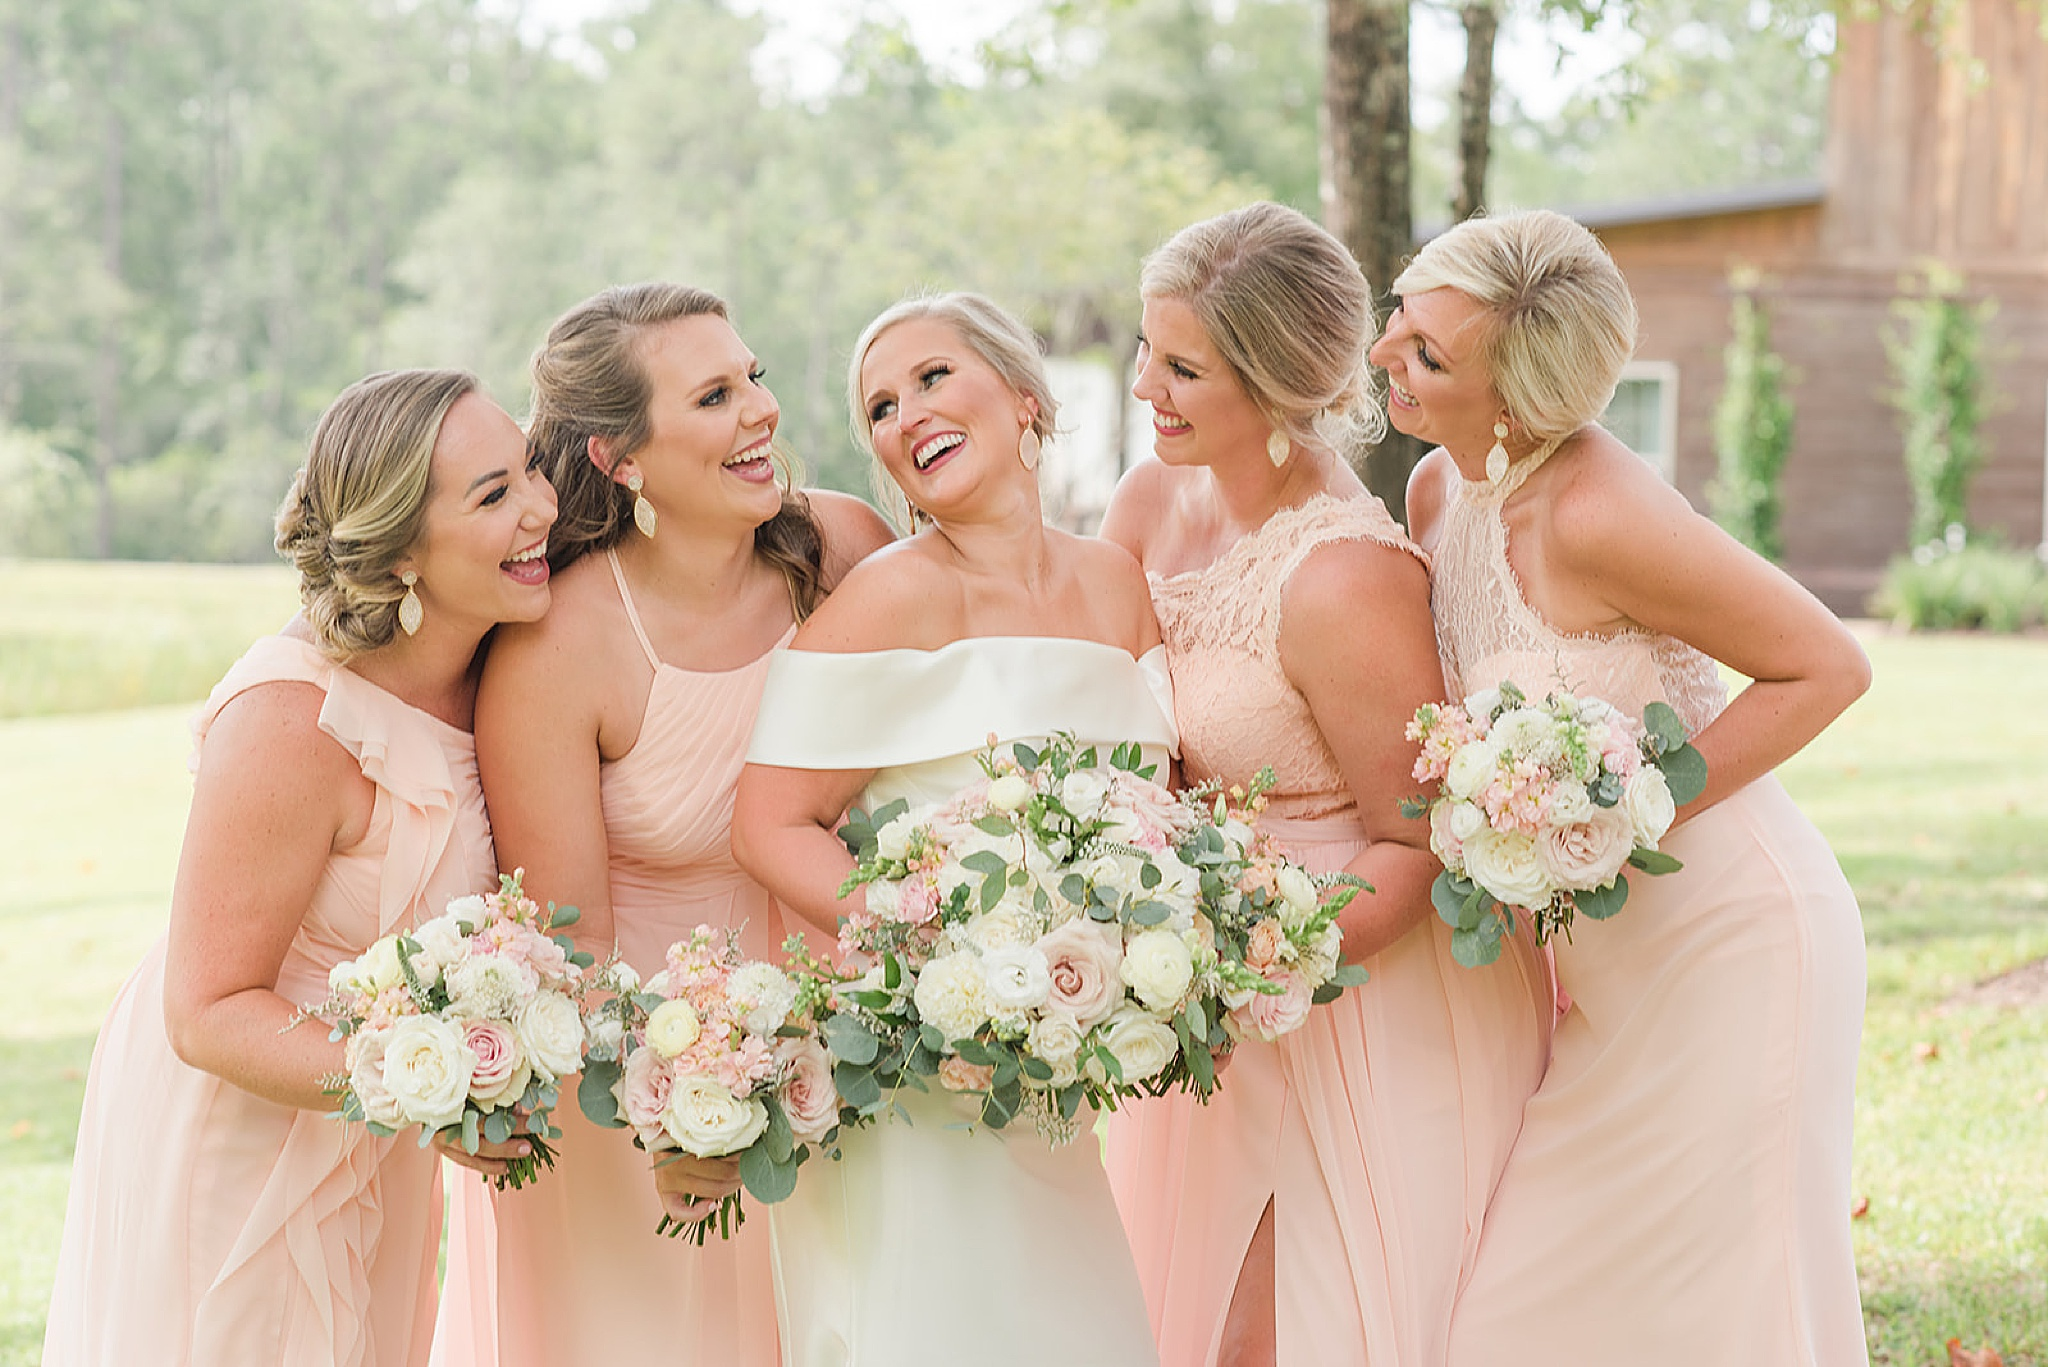 bridesmaid laughs with bridesmaids before wedding ceremony